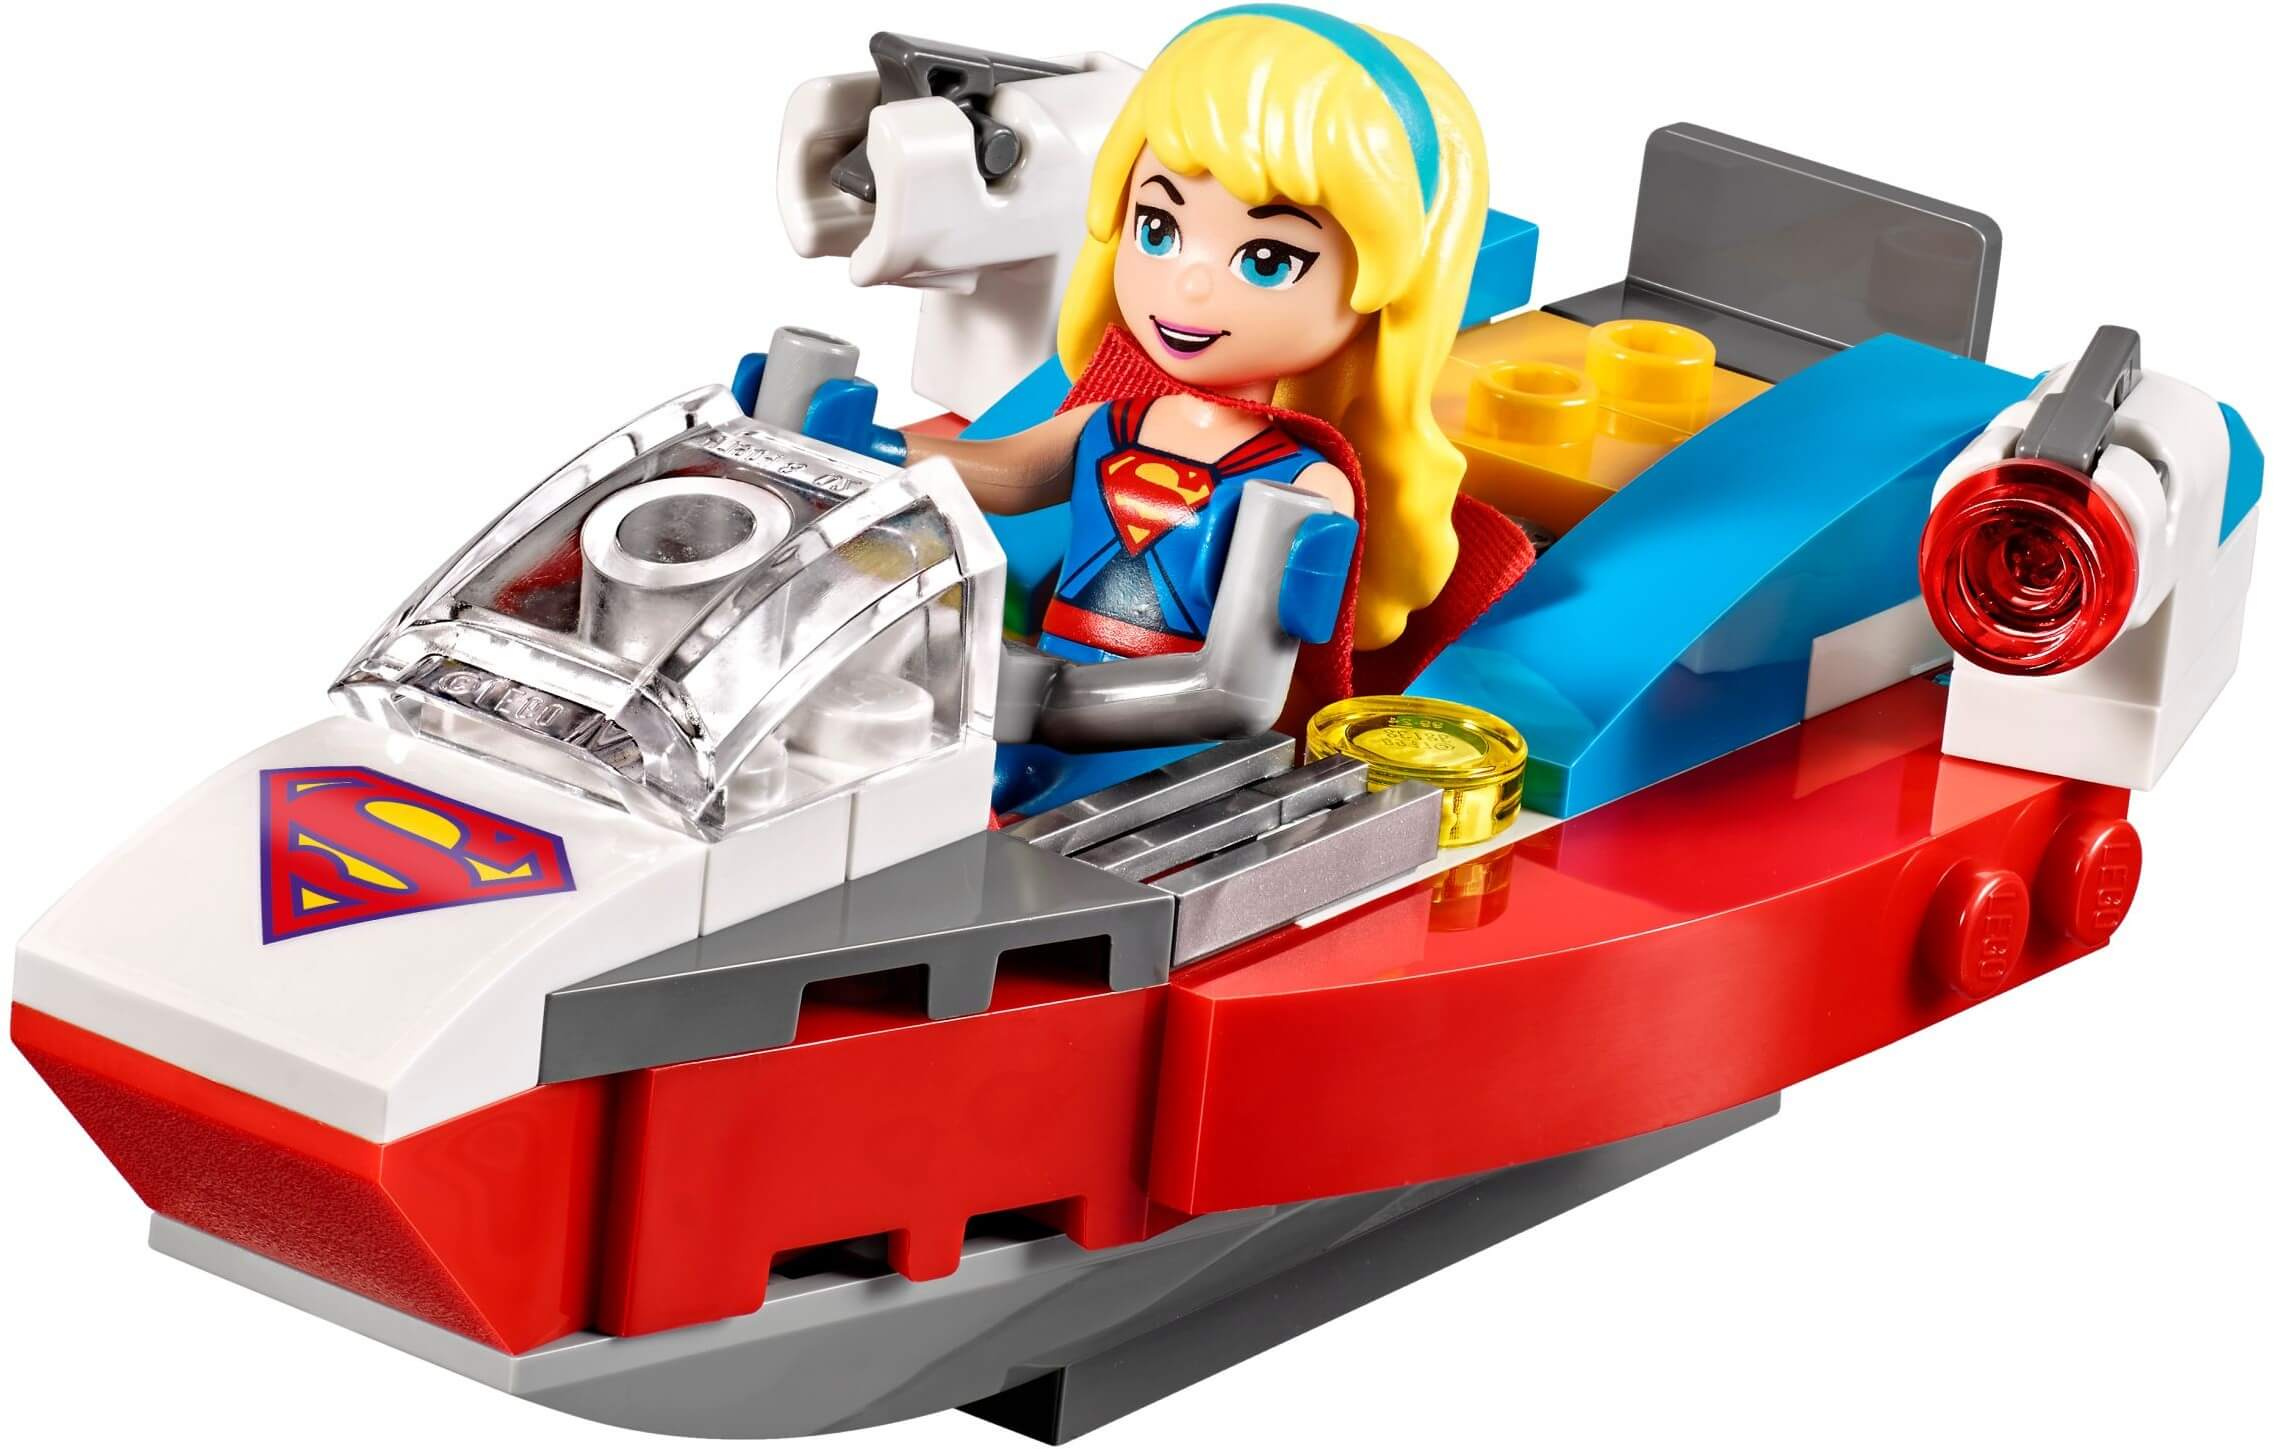 Mua đồ chơi LEGO 41238 - LEGO Super Hero Girls 41238 - Nhà Máy Kryptomite của Lena Luthor (LEGO Super Hero Girls Lena Luthor Kryptomite Factory)